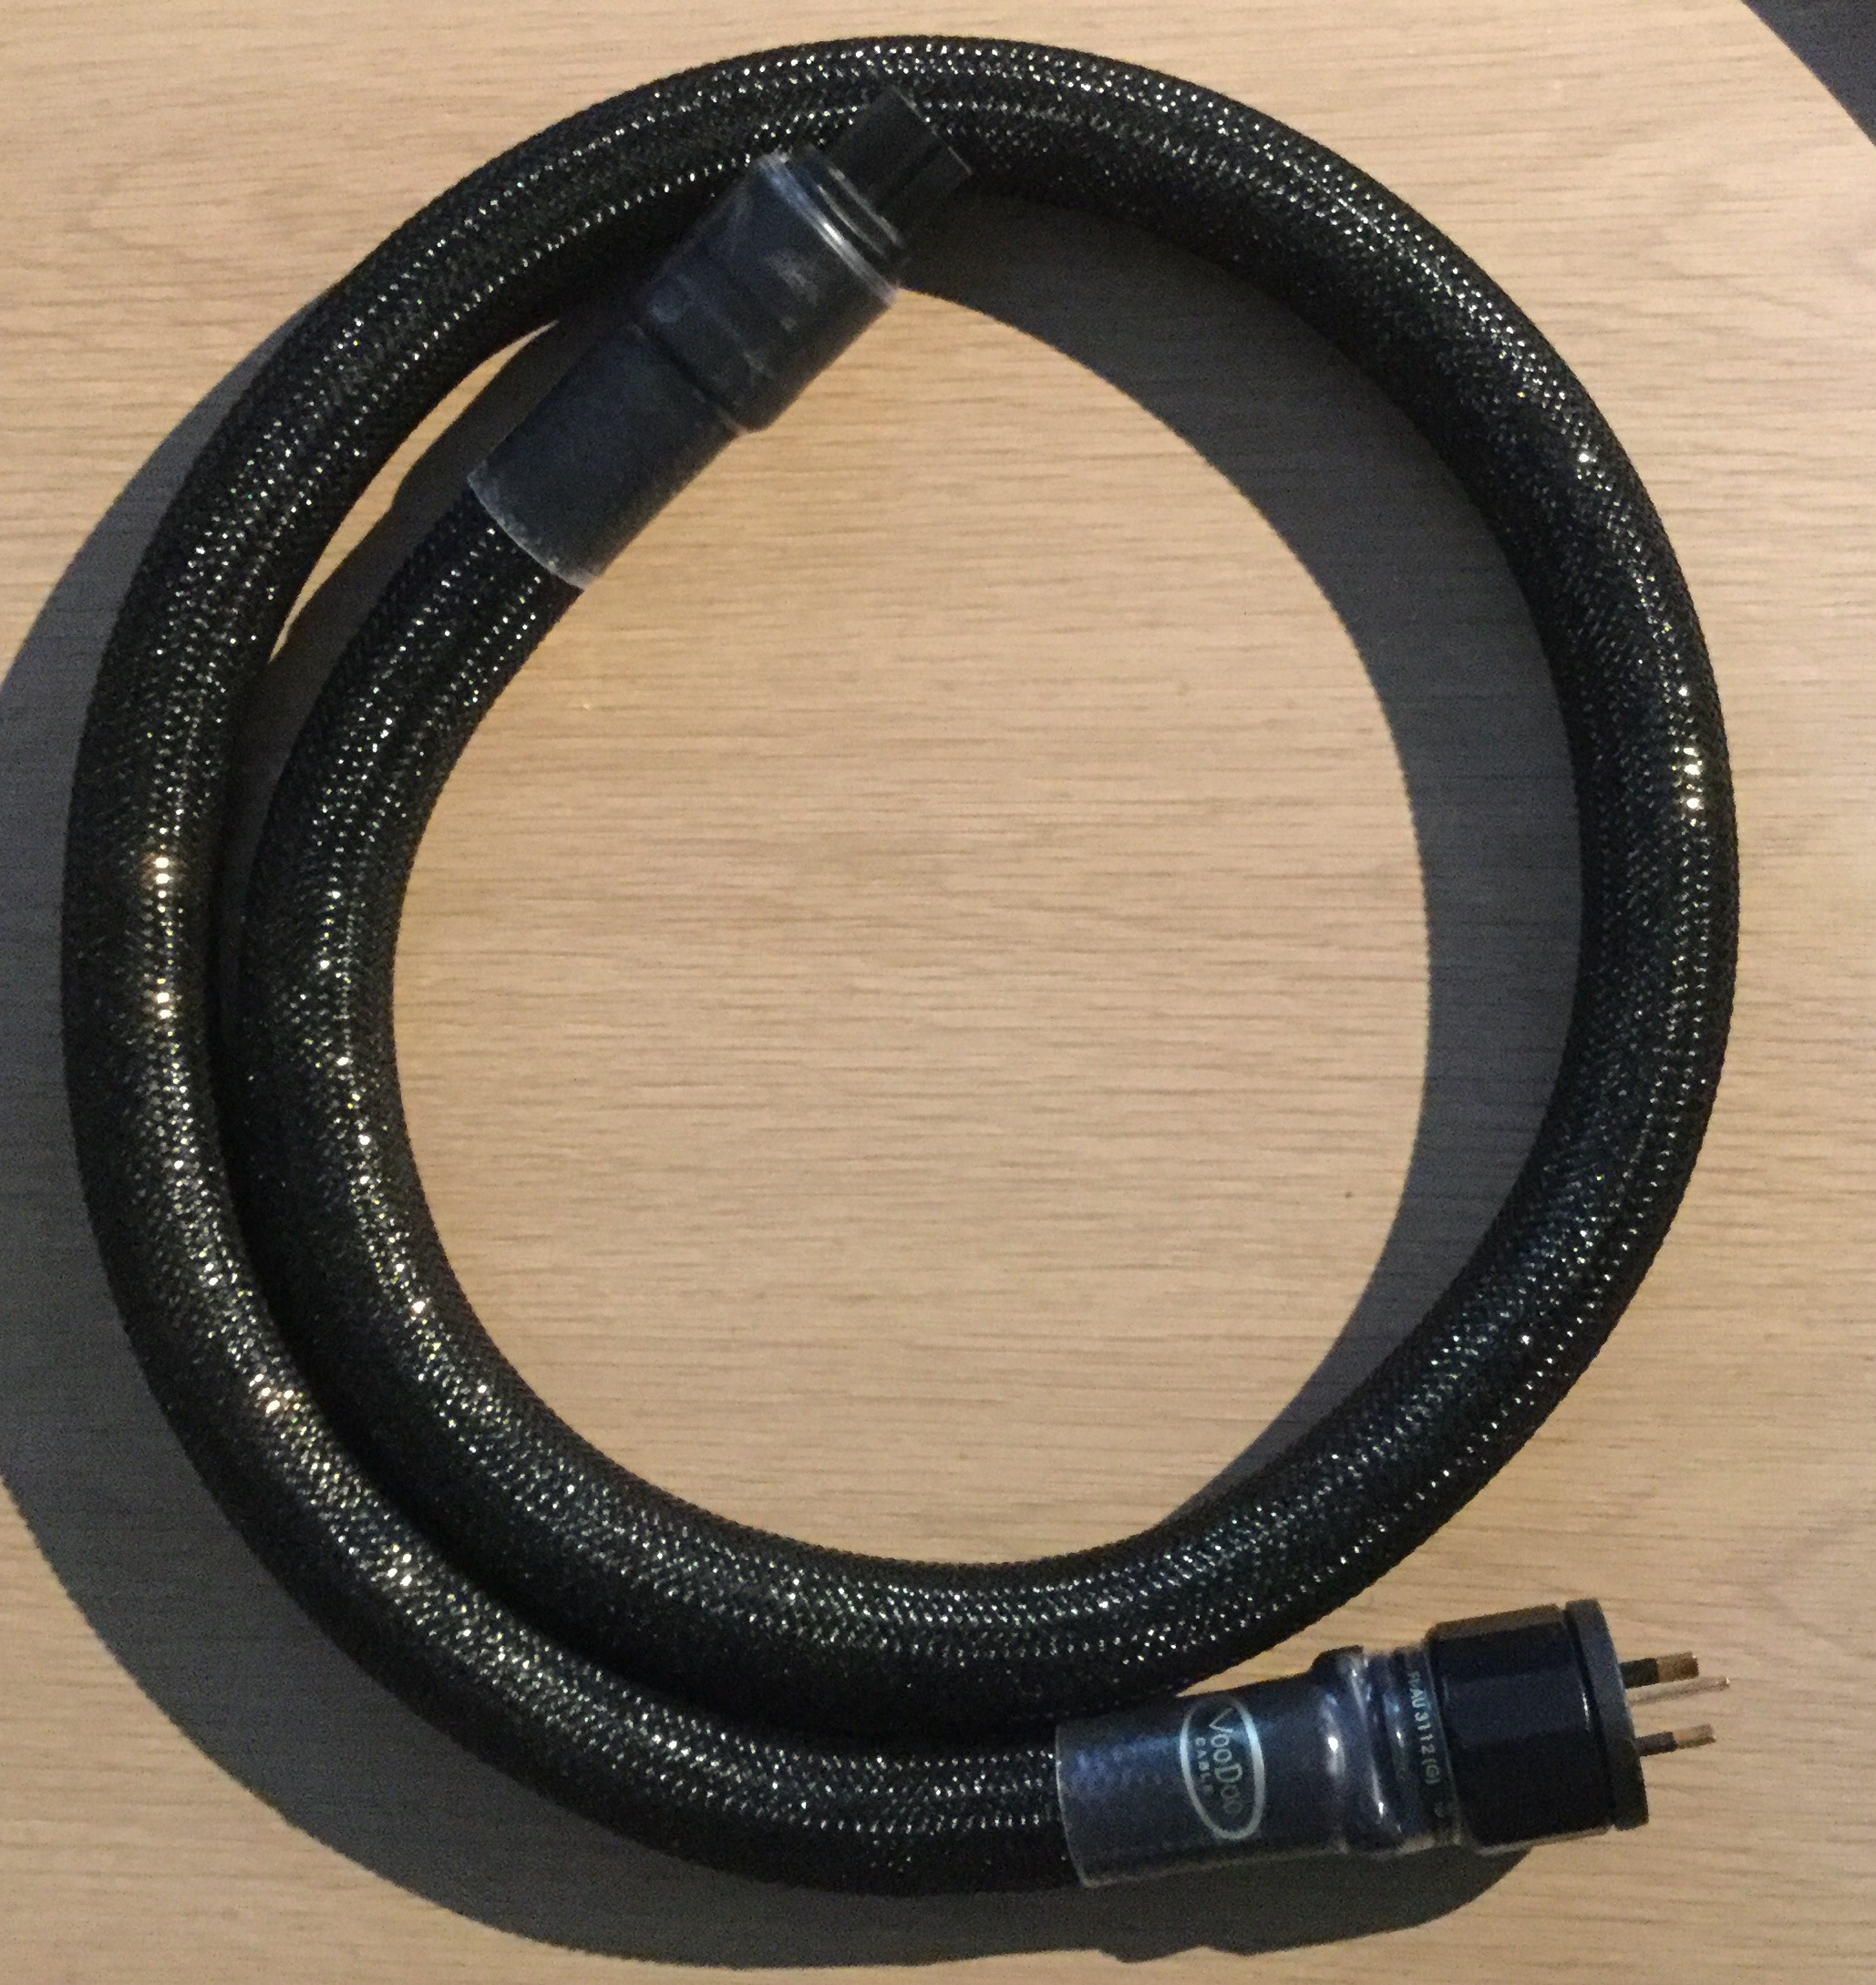 Fs Voodoo Black Diamond Dragon Power Cable Au Plug Classifieds Plugs Cables Electronics Stereonet Imagejpeg